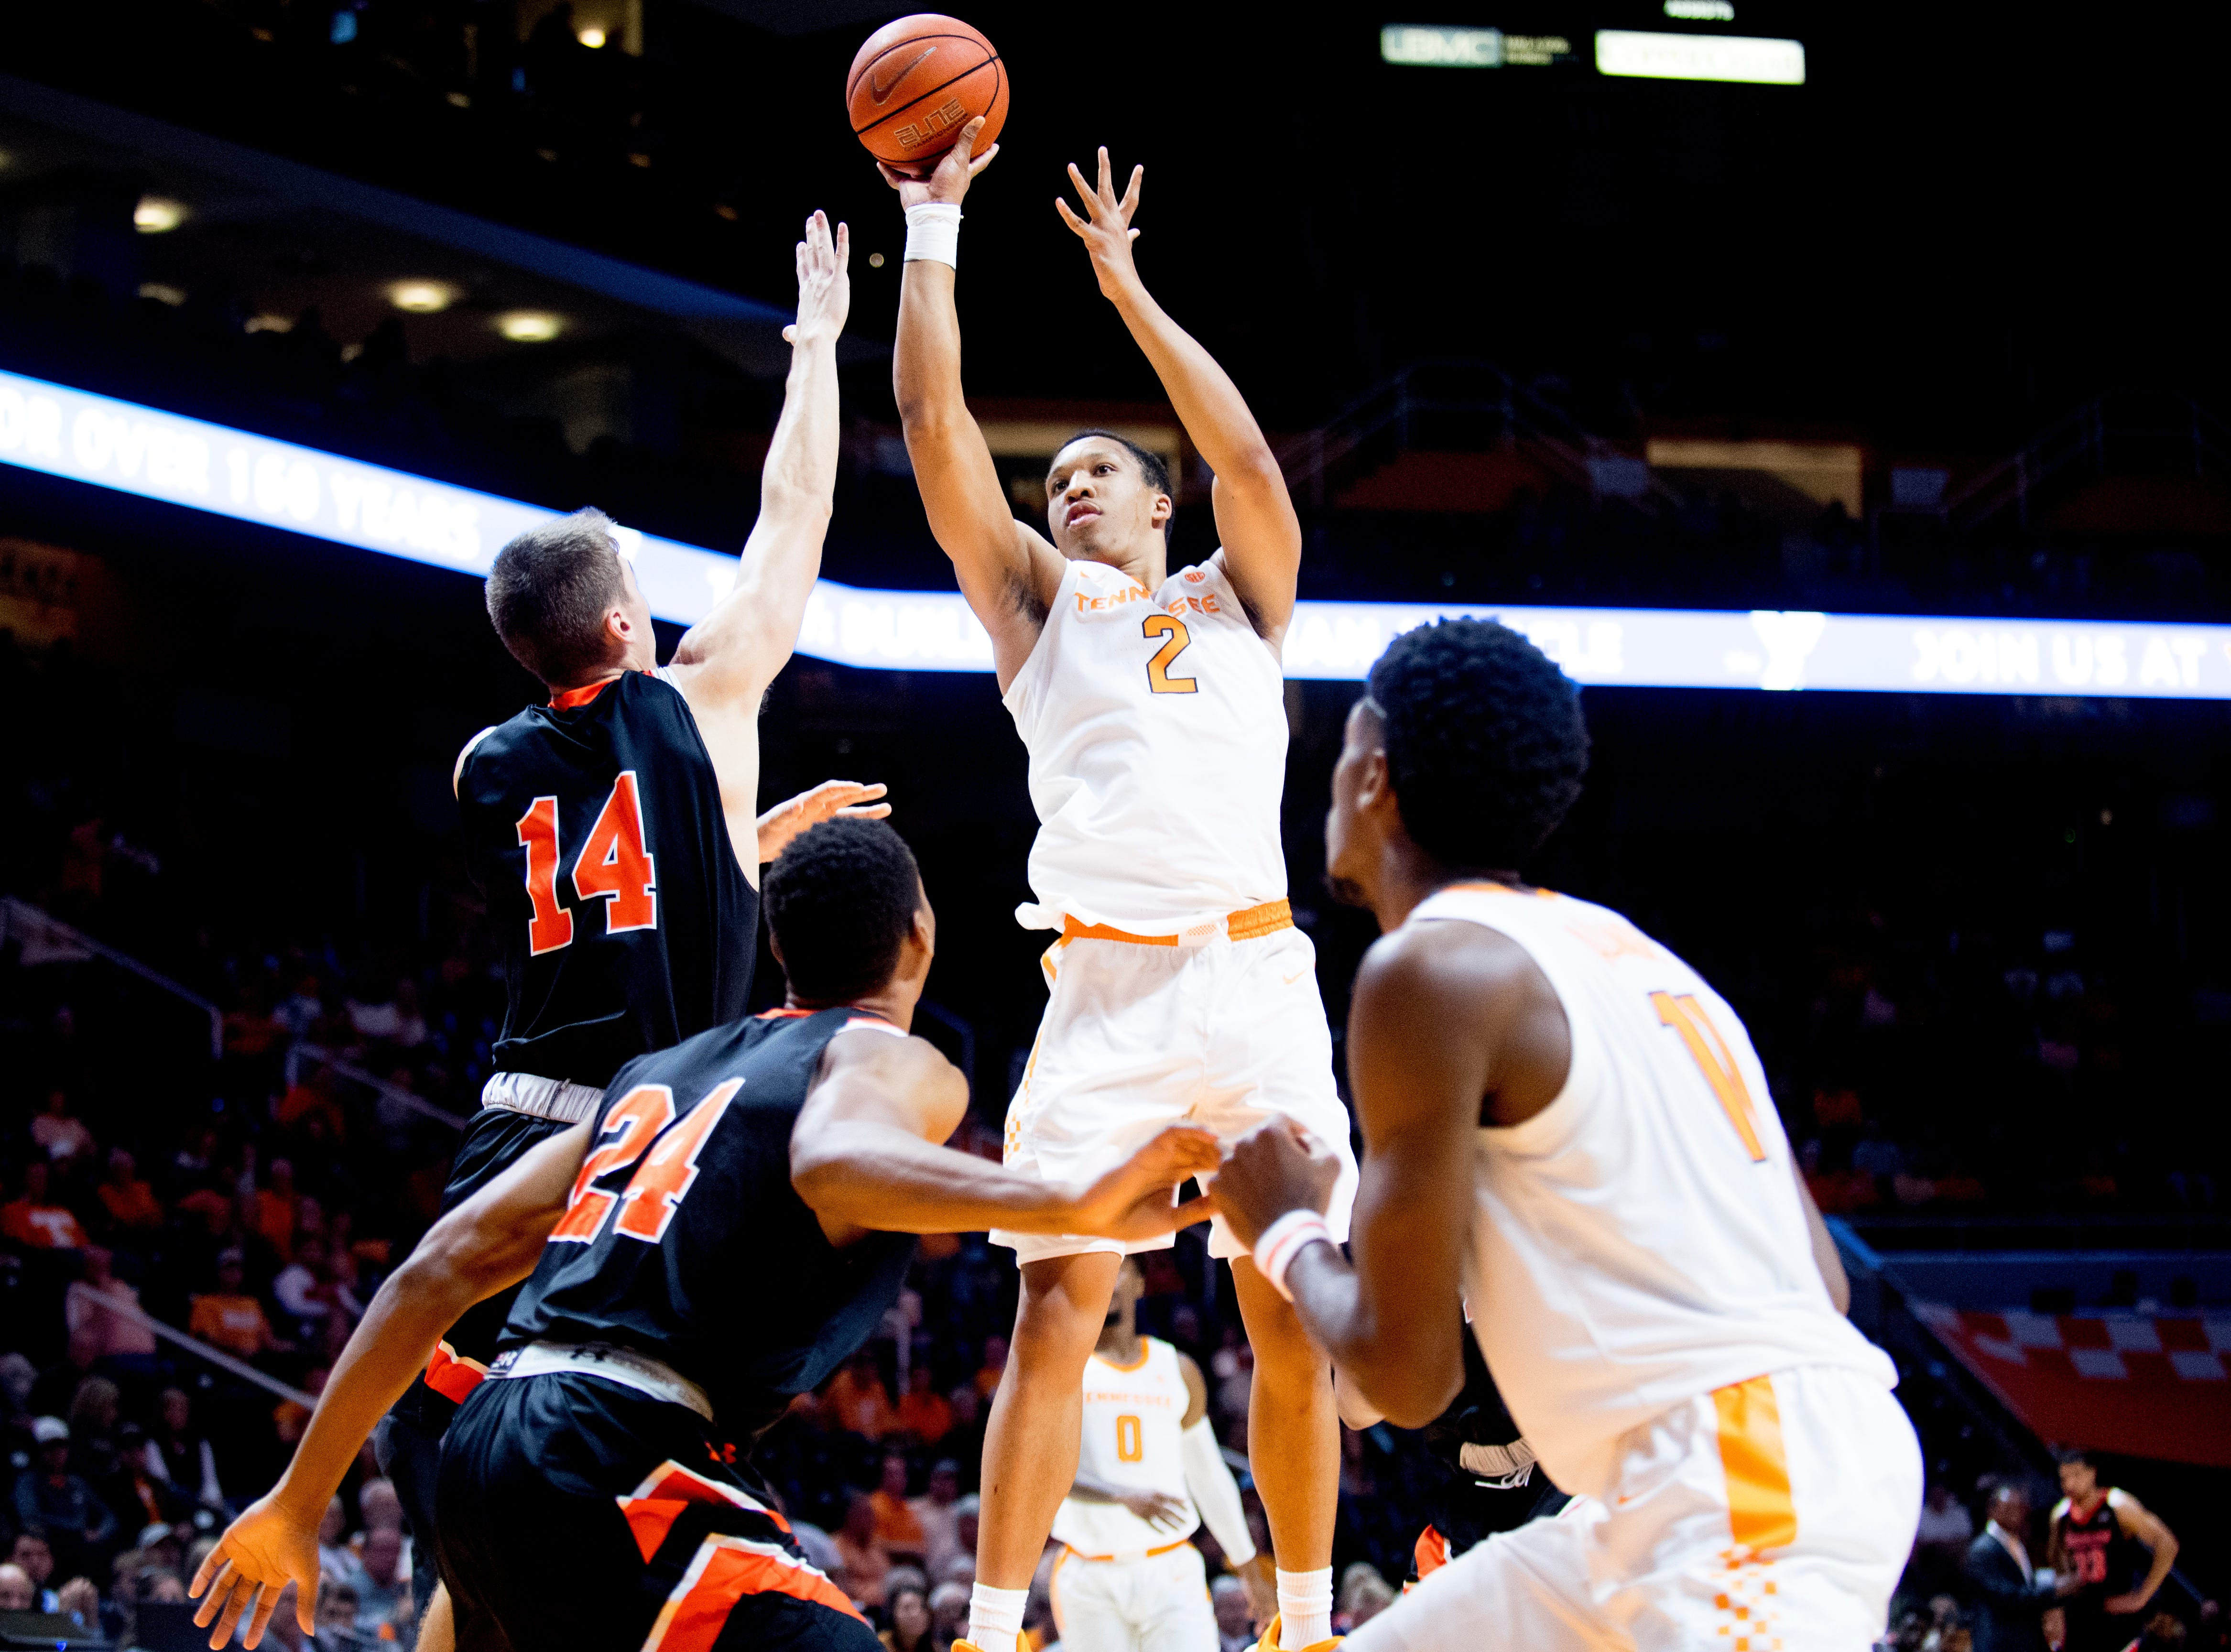 Tennessee forward Grant Williams (2) shoots past Tusculum forward Caleb Hodnett (14) during a game between Tennessee and Tusculum at Thompson-Boling Arena in Knoxville, Tennessee on Wednesday, October 31, 2018.